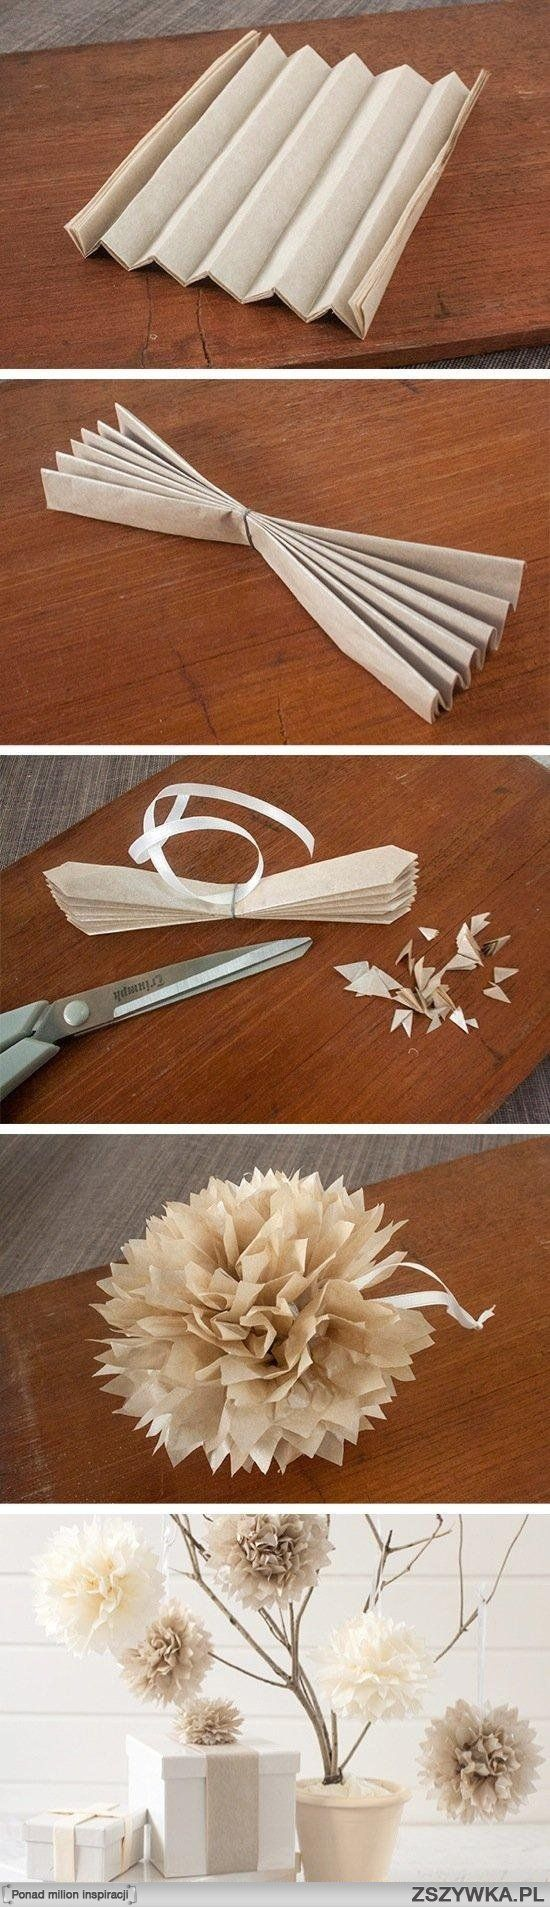 DIY : Create nice flower with paper @Sarah Chintomby Chintomby Chintomby Chintomby Chintomby Chintomby Finney